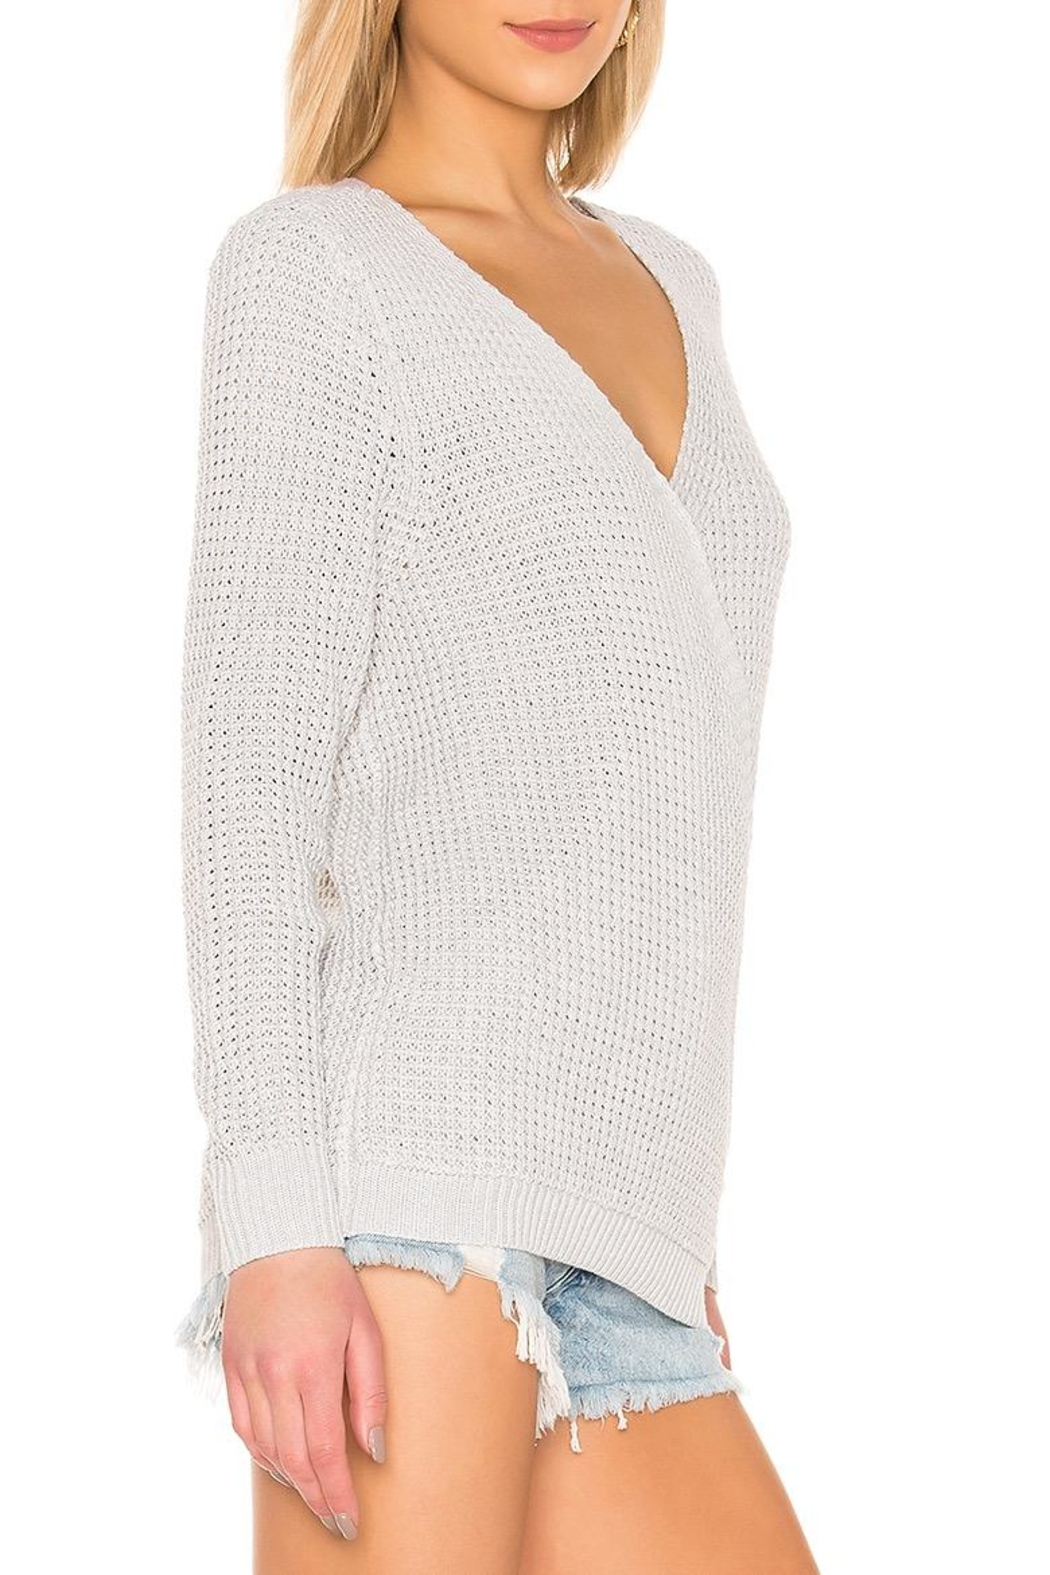 Mink Pink Victoria Cross-Over Sweater - Front Full Image